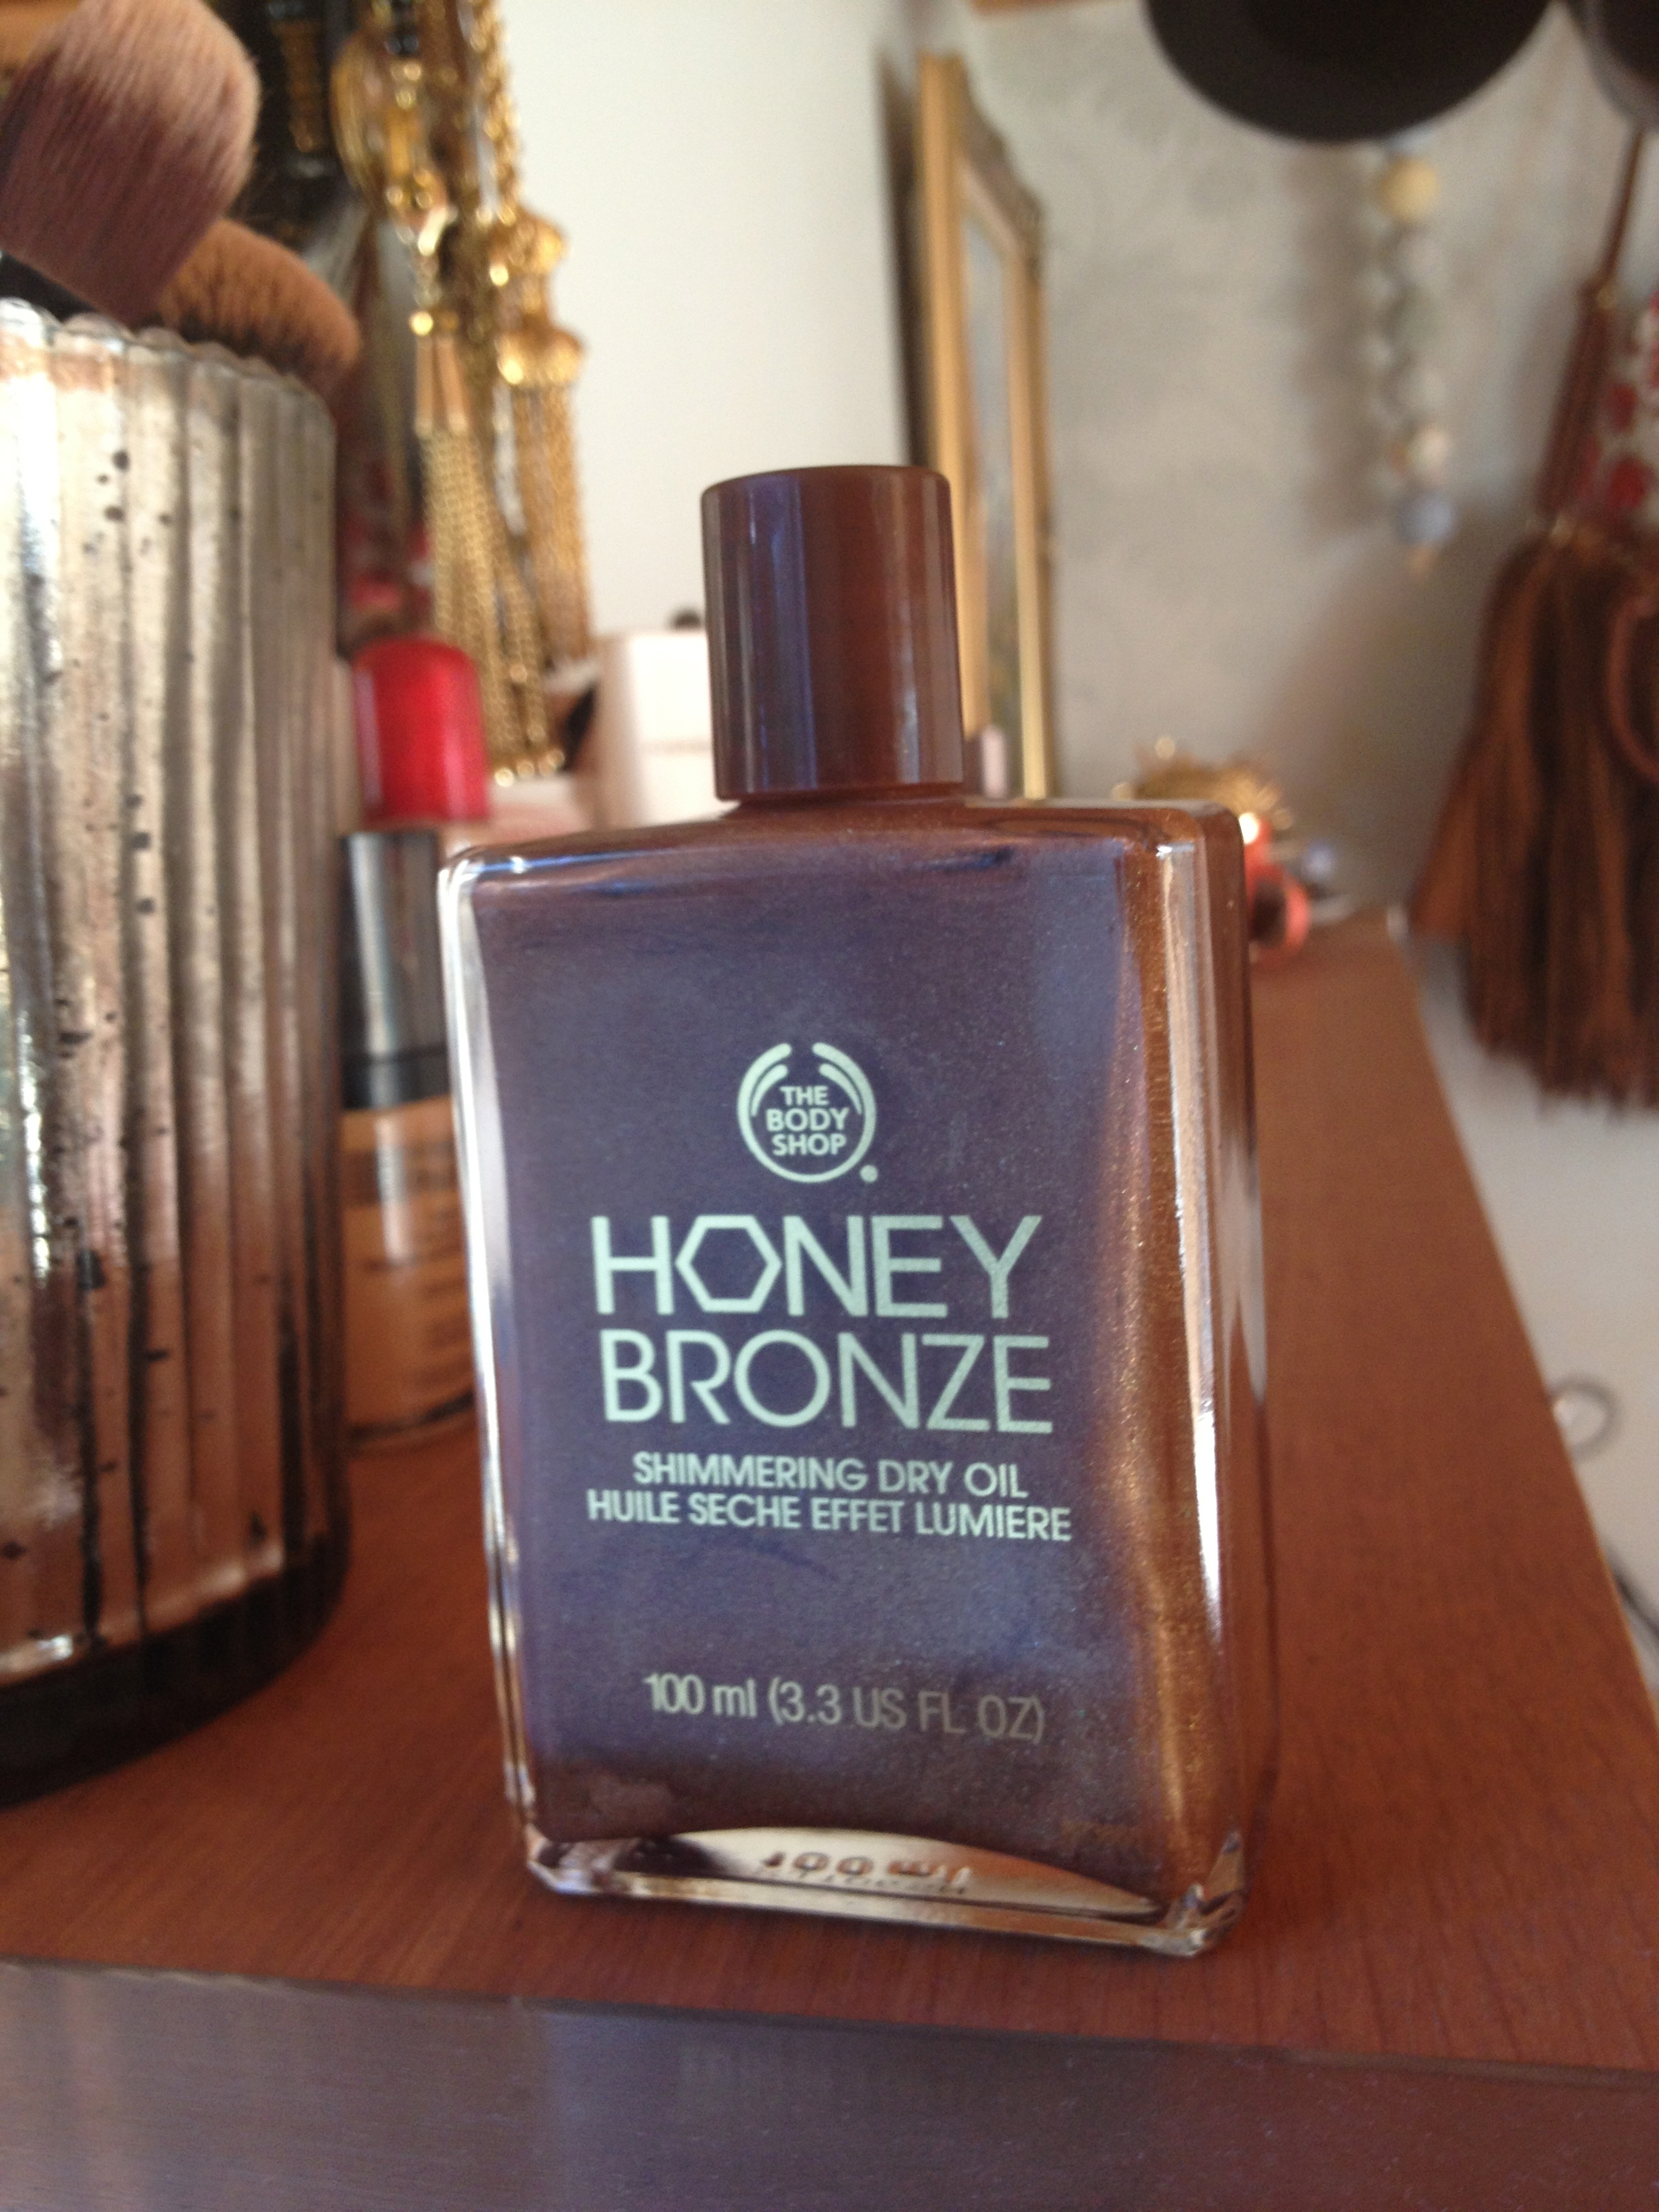 honey bronze shimmering dry oil reviews